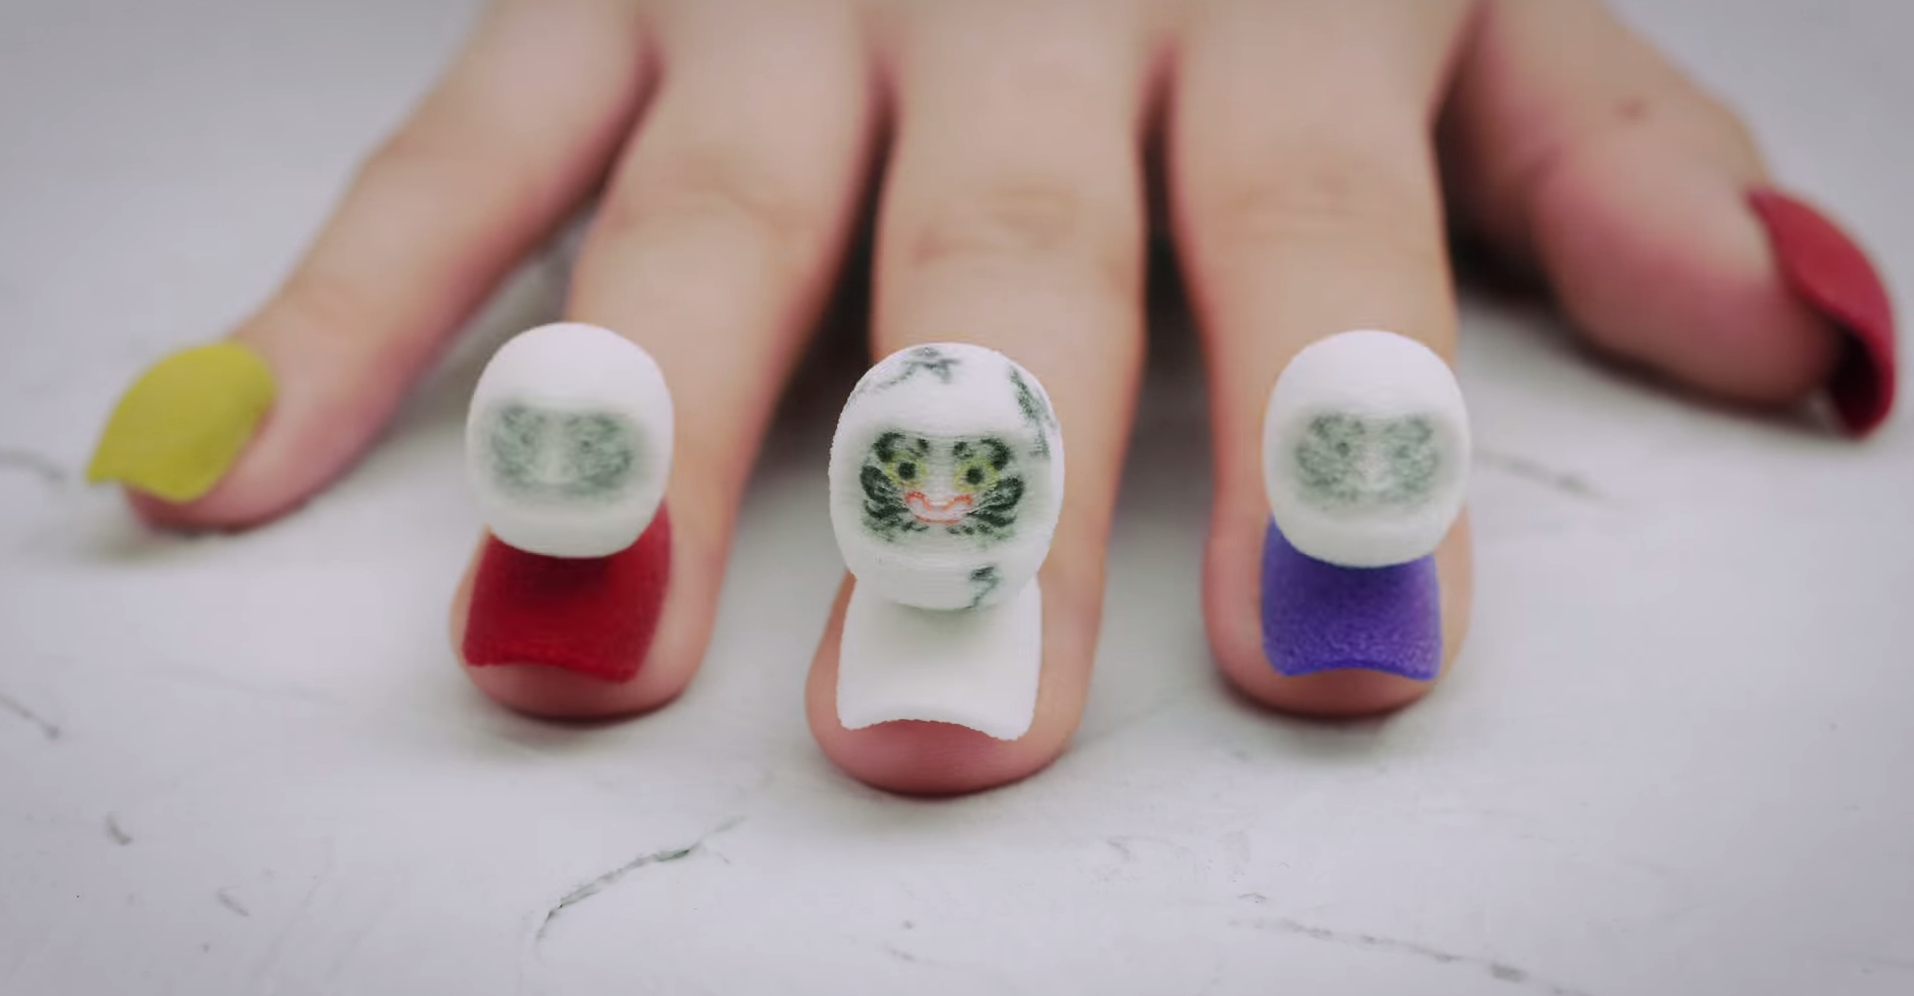 Stopmotion nail art is a sneak preview of our augmented reality